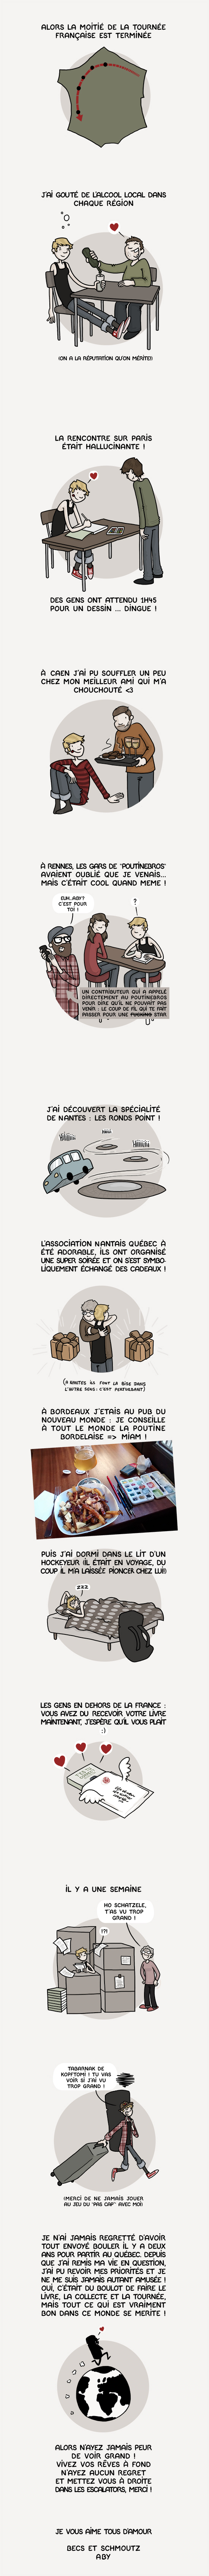 "Illustration 2 de l'article ""Graffalgar et news Ulule..."""